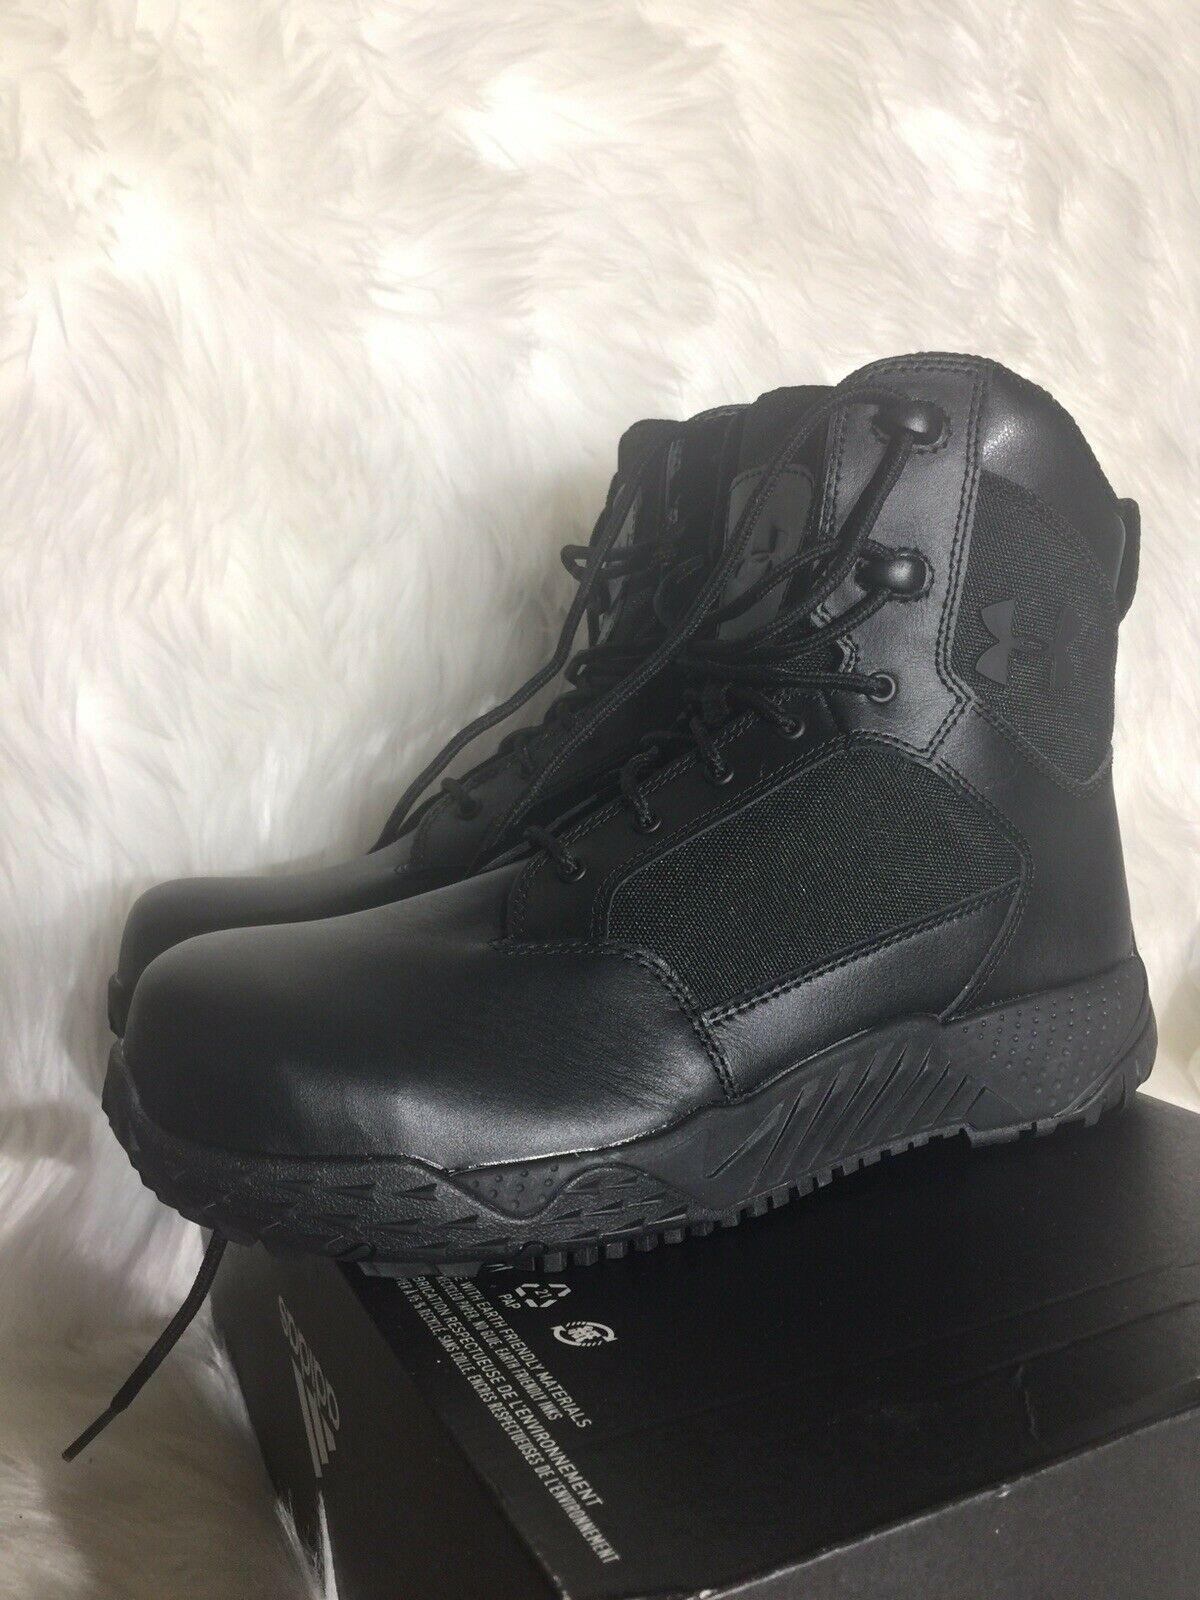 New UnDer Armour Black Steel-Toe Tactical Boot US Woman's Sz 9-5